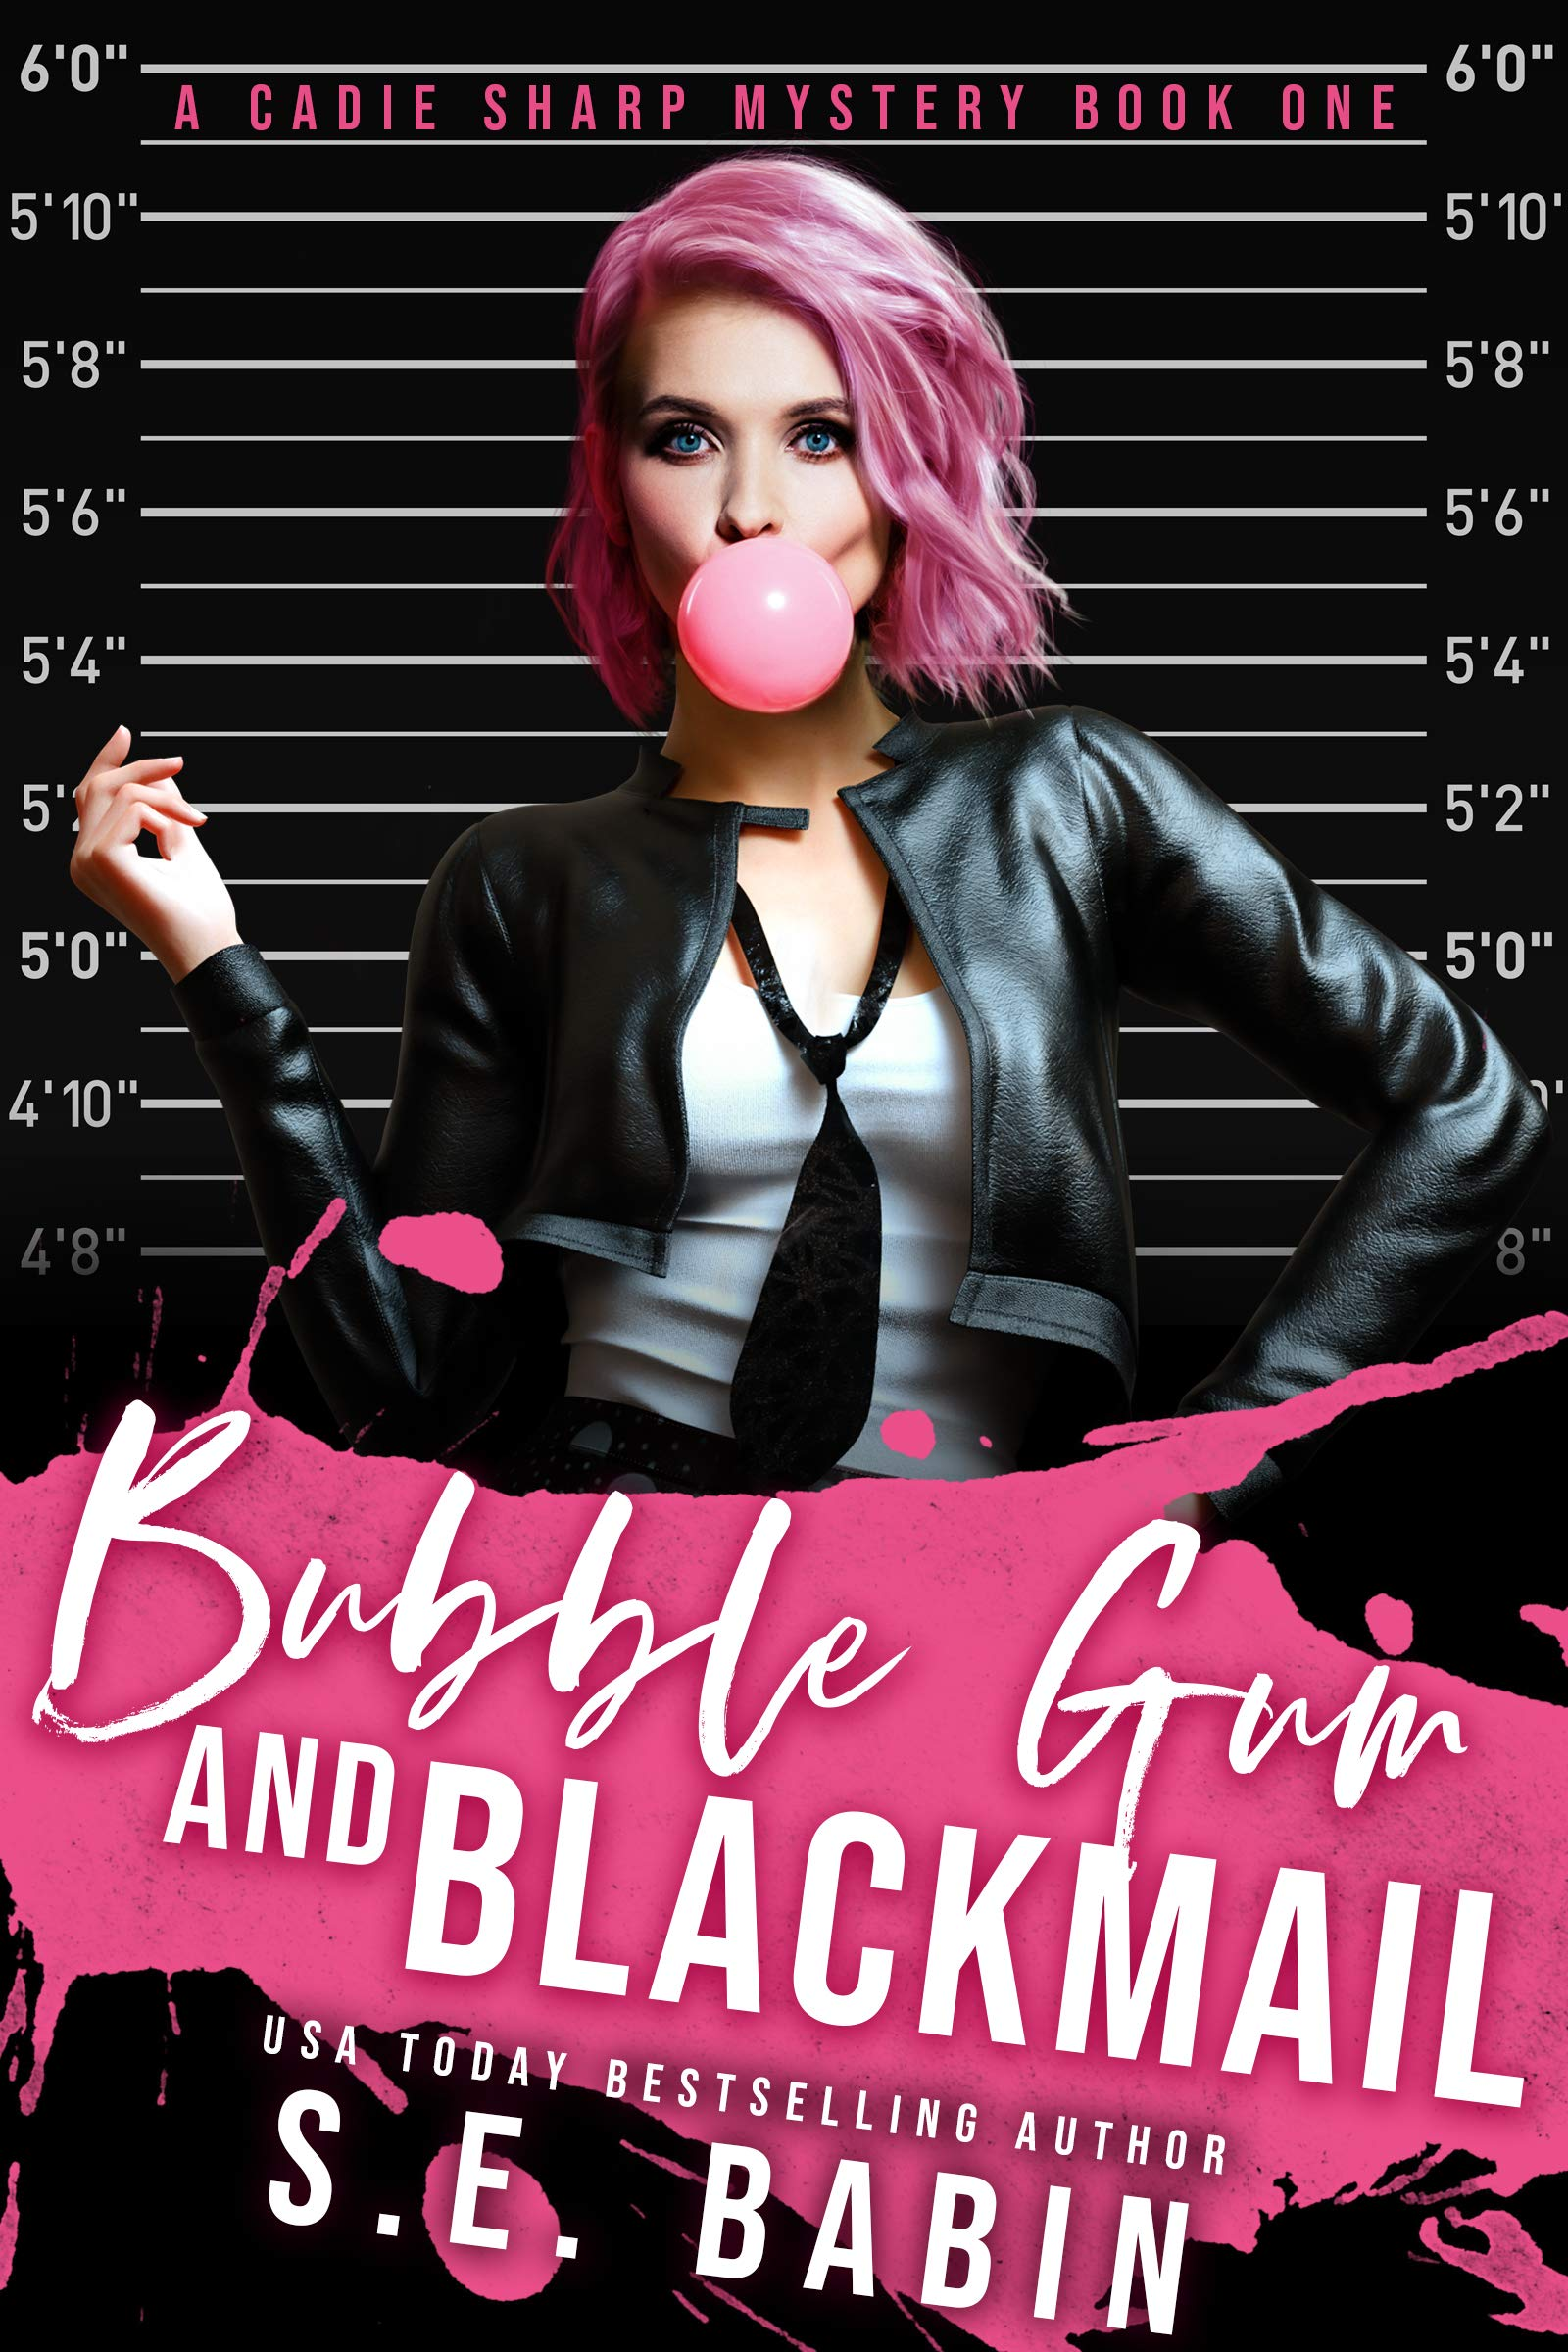 Bubble Gum and Blackmail (Cadie Sharp #1)